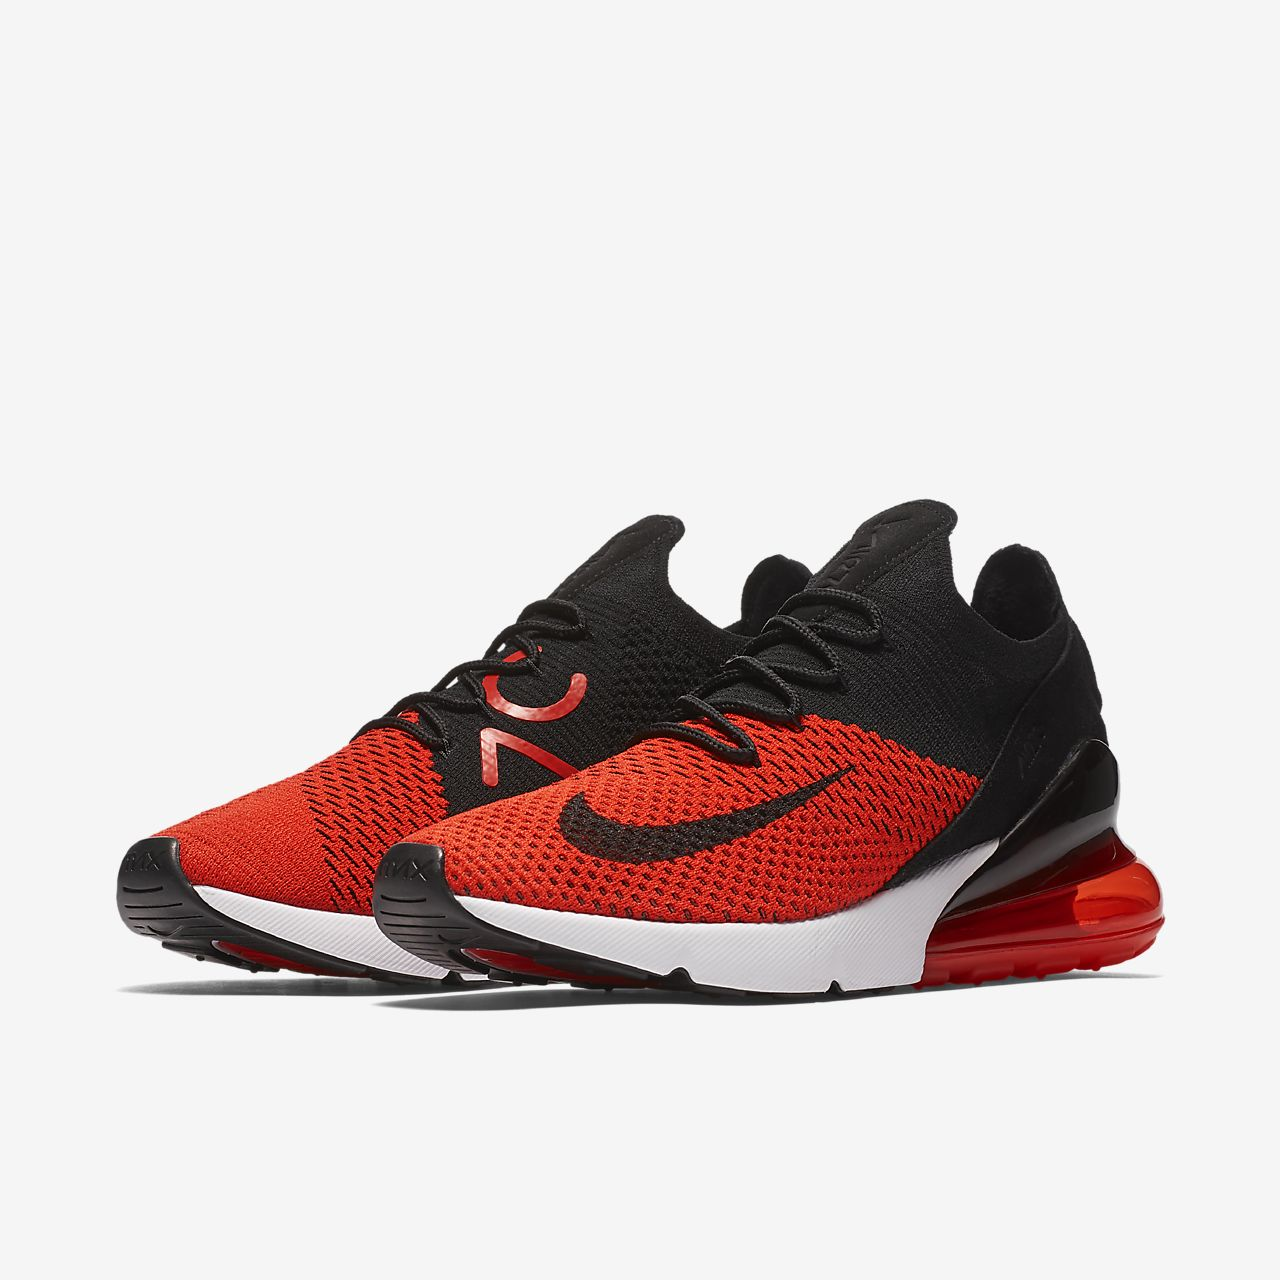 free shipping 28025 5ea51 ... Nike Air Max 270 Flyknit Mens Shoe